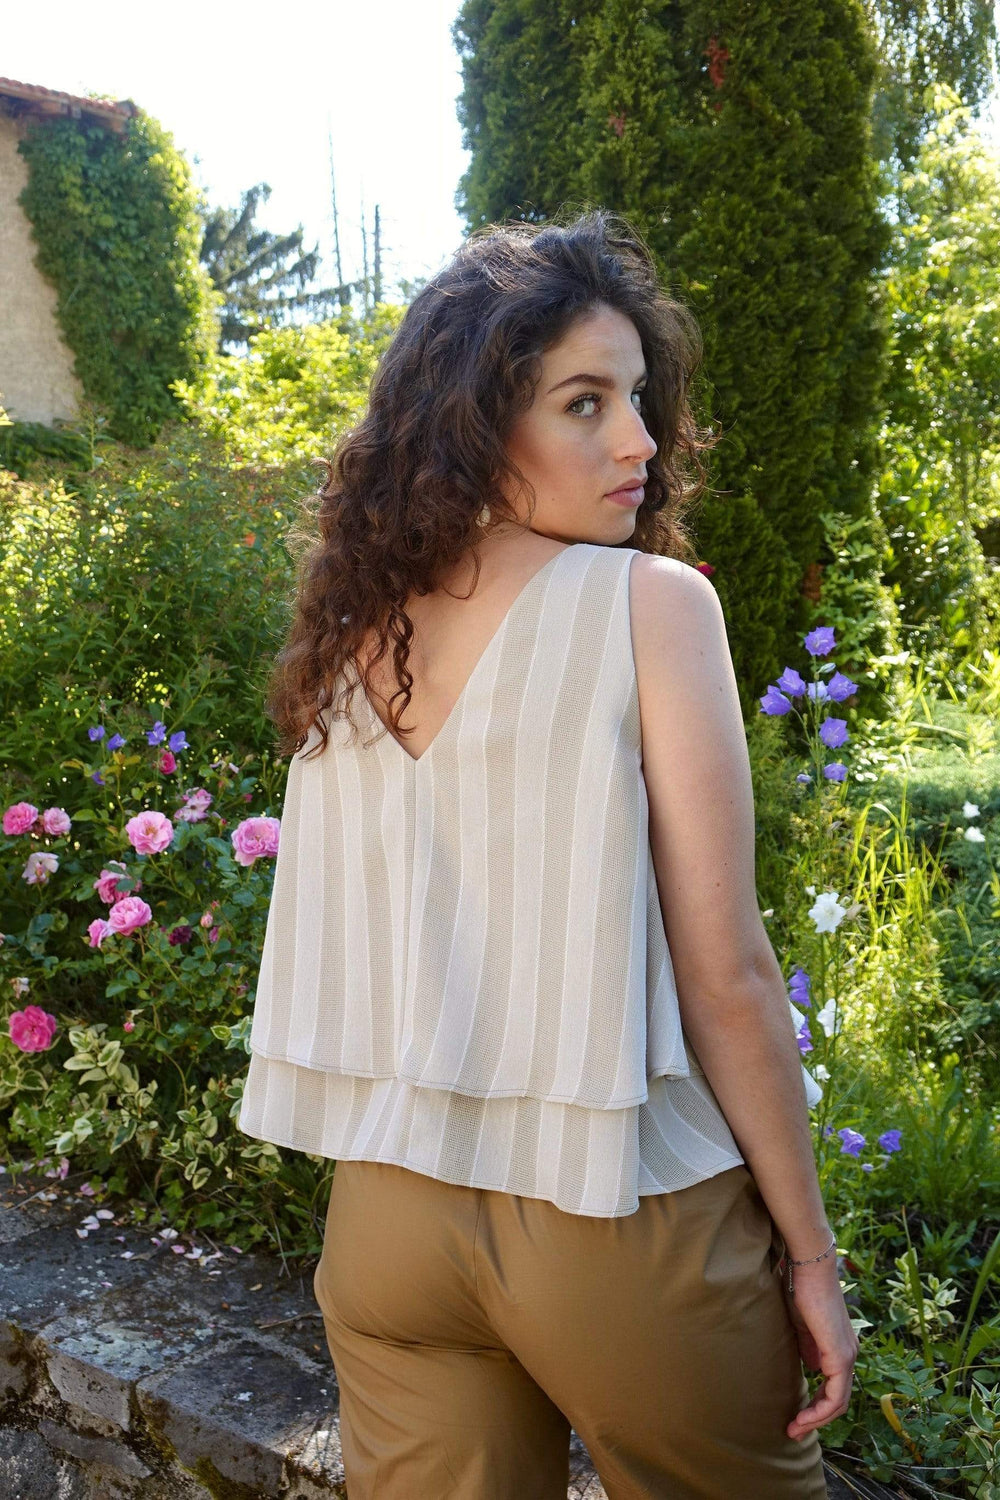 Maison ALFA Top TOP MELODIE BEIGE - COTON/POLYESTER UPCYCLES